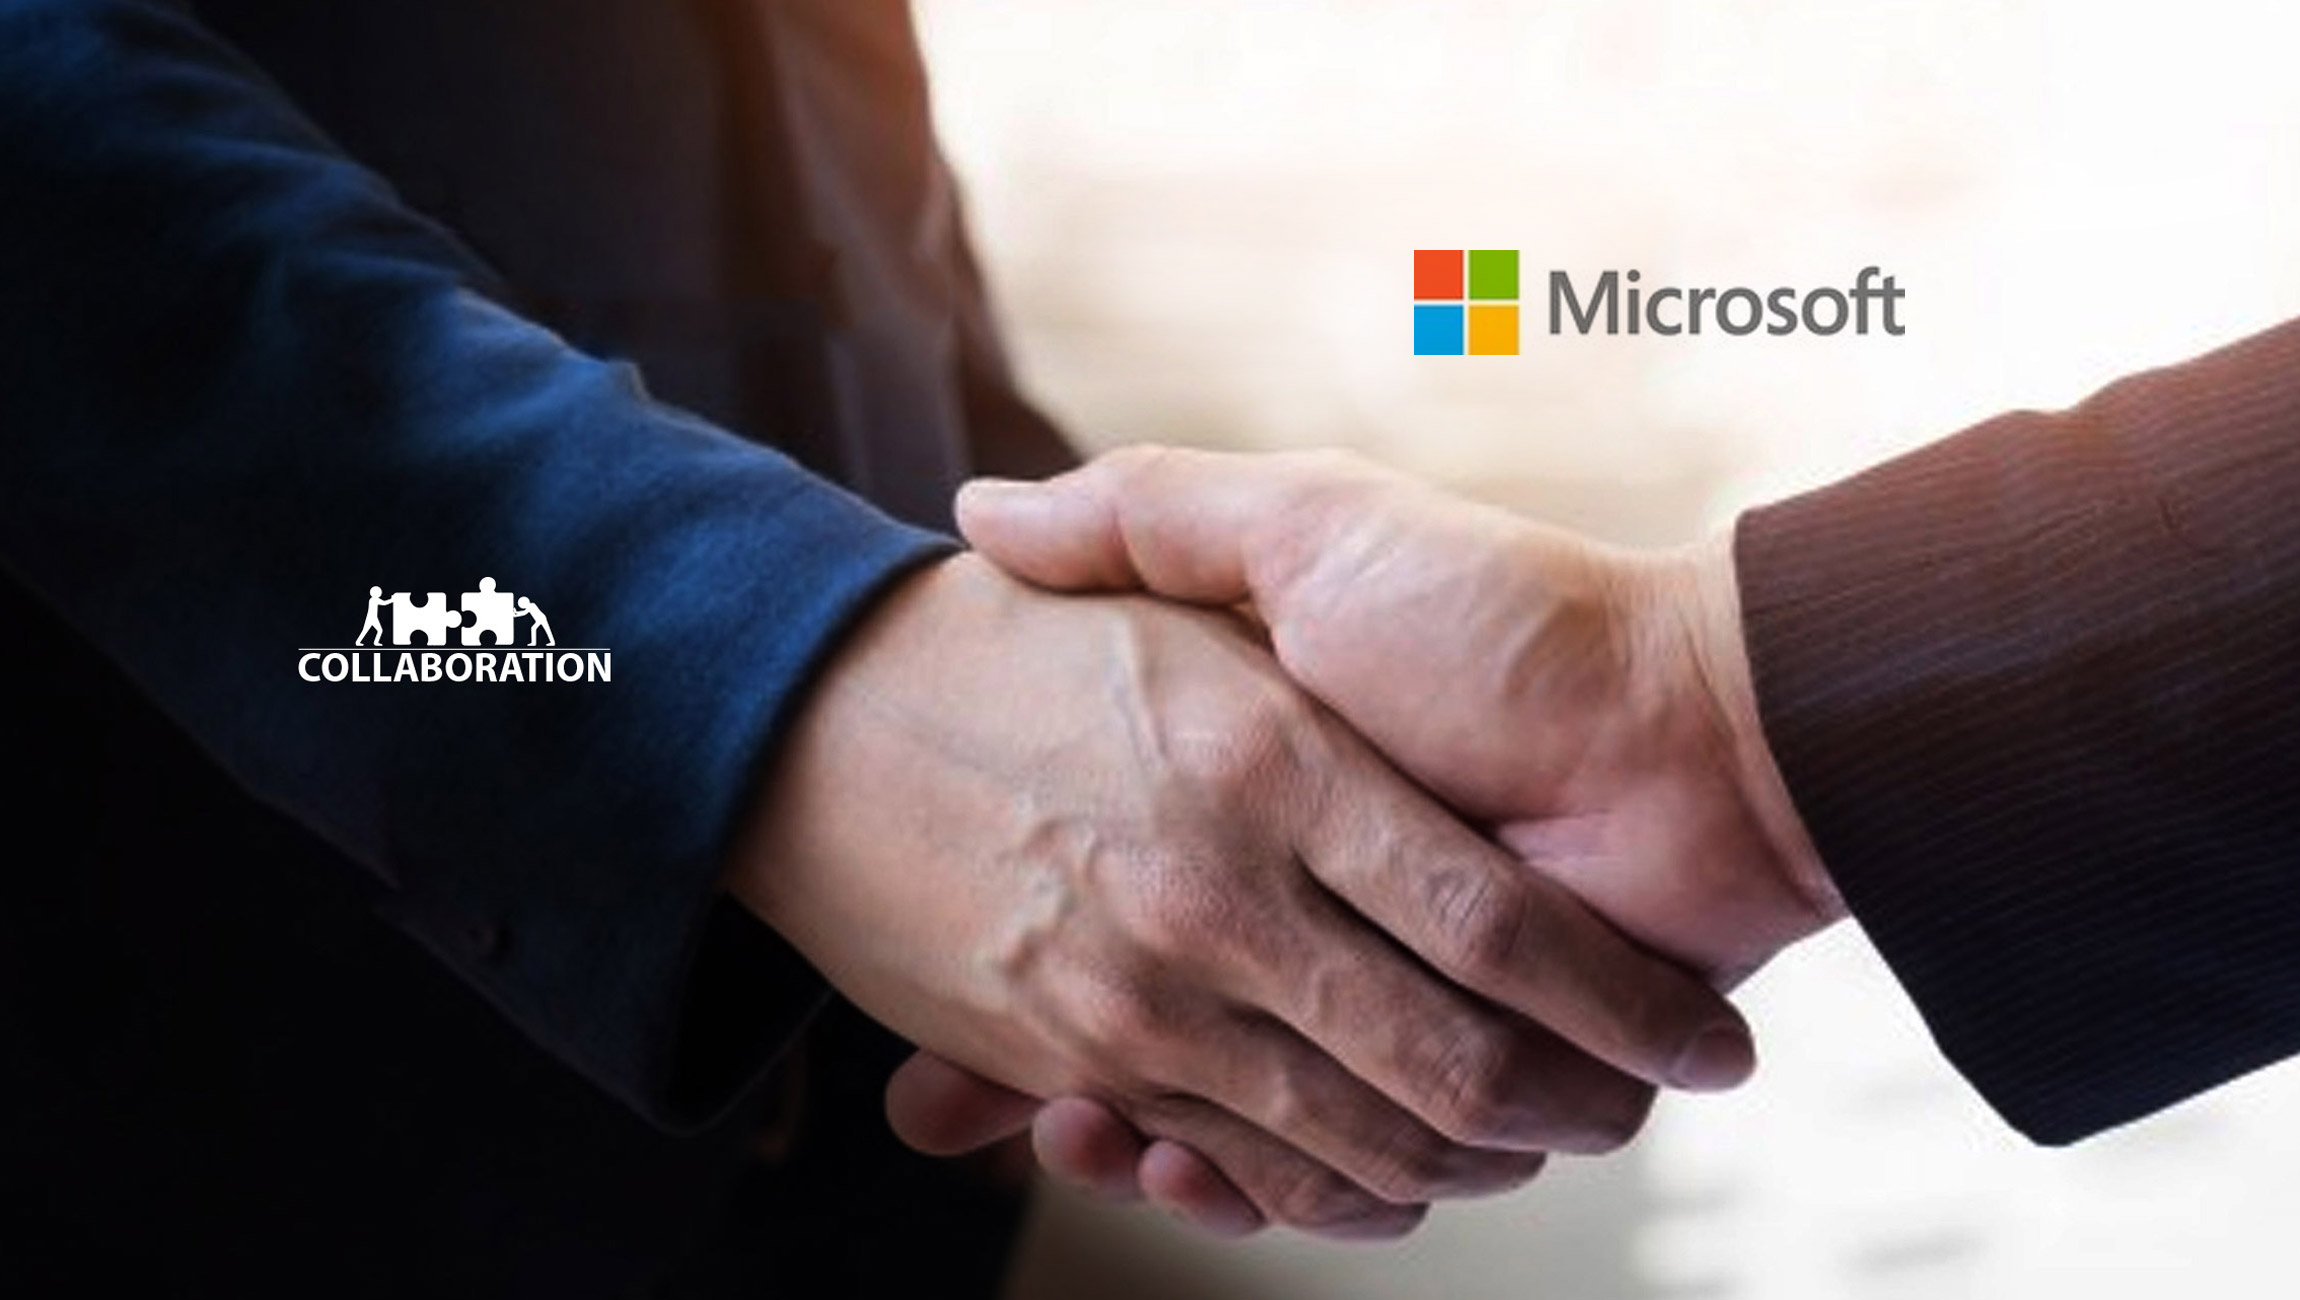 PepsiCo Partners With Microsoft for New Era of Operational Agility and Product Innovation Amid Rising Consumer Demand